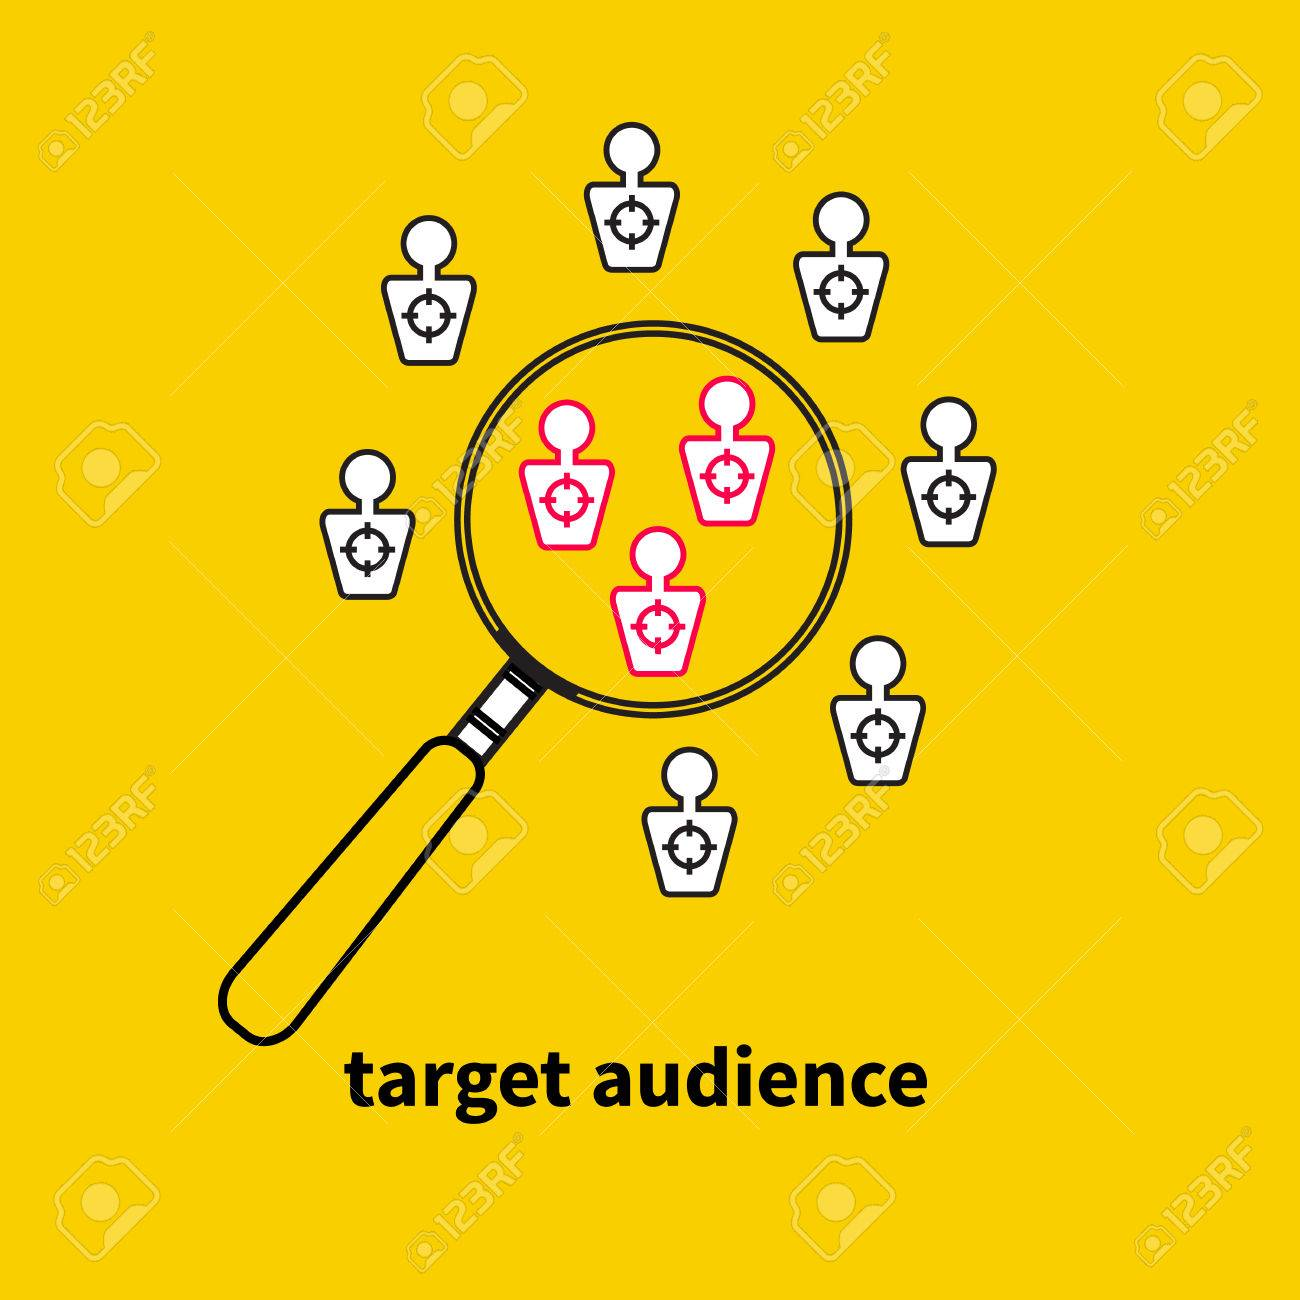 target-audience-vector-magnifying-glass-and-people-targets-market-research